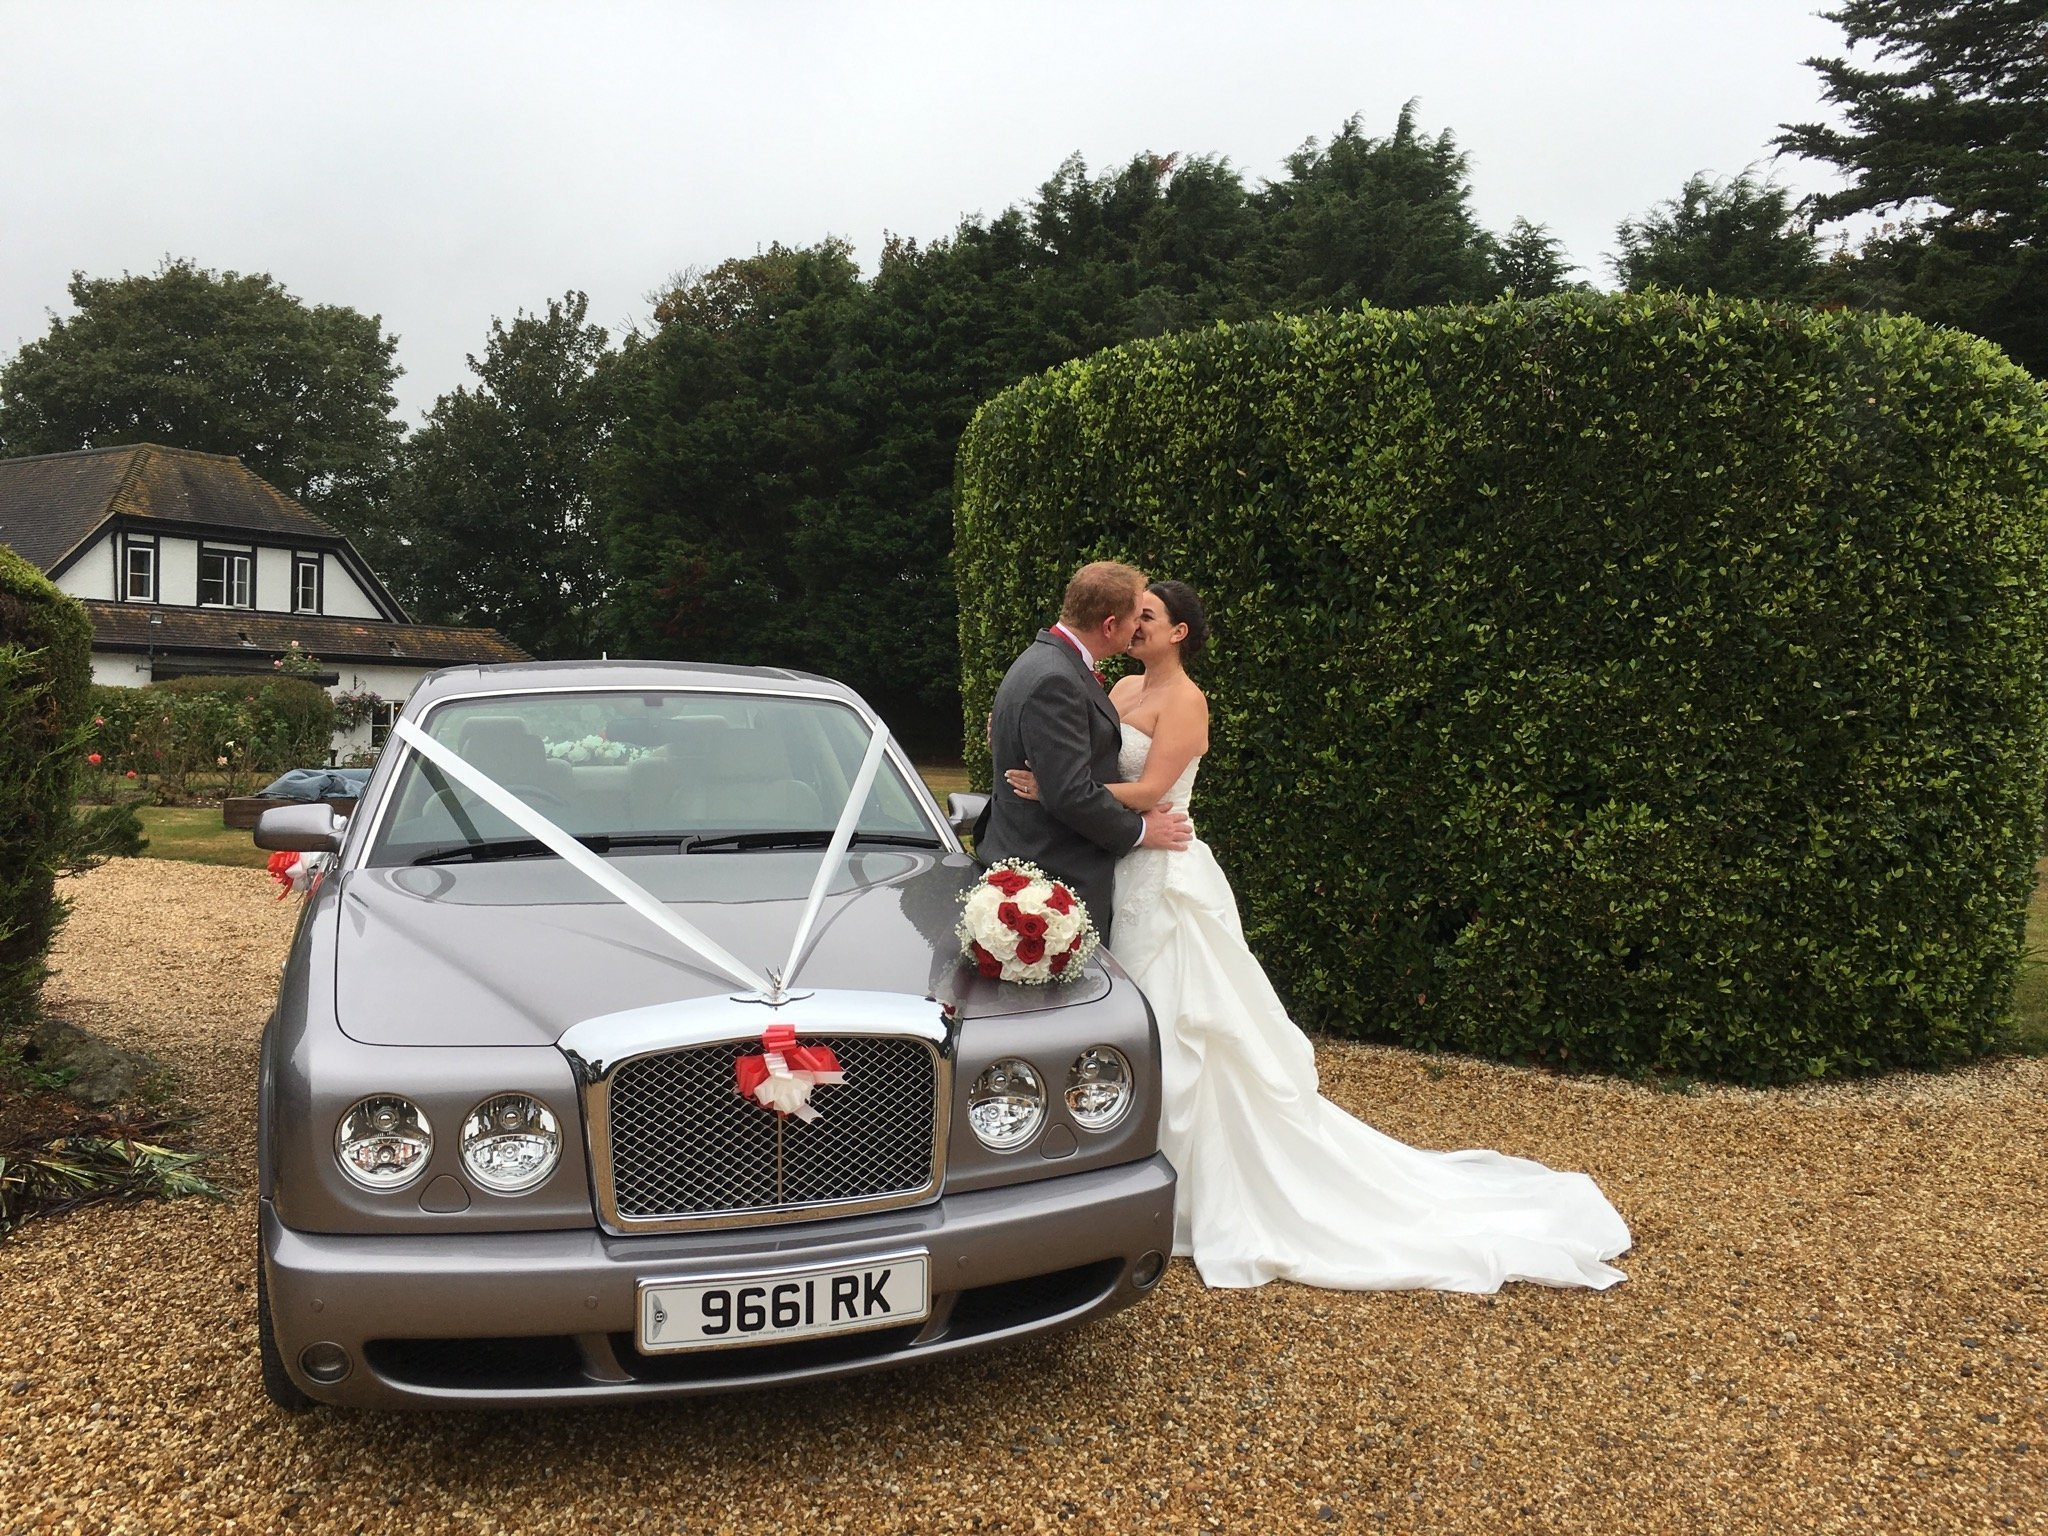 Couple posing next to their wedding car